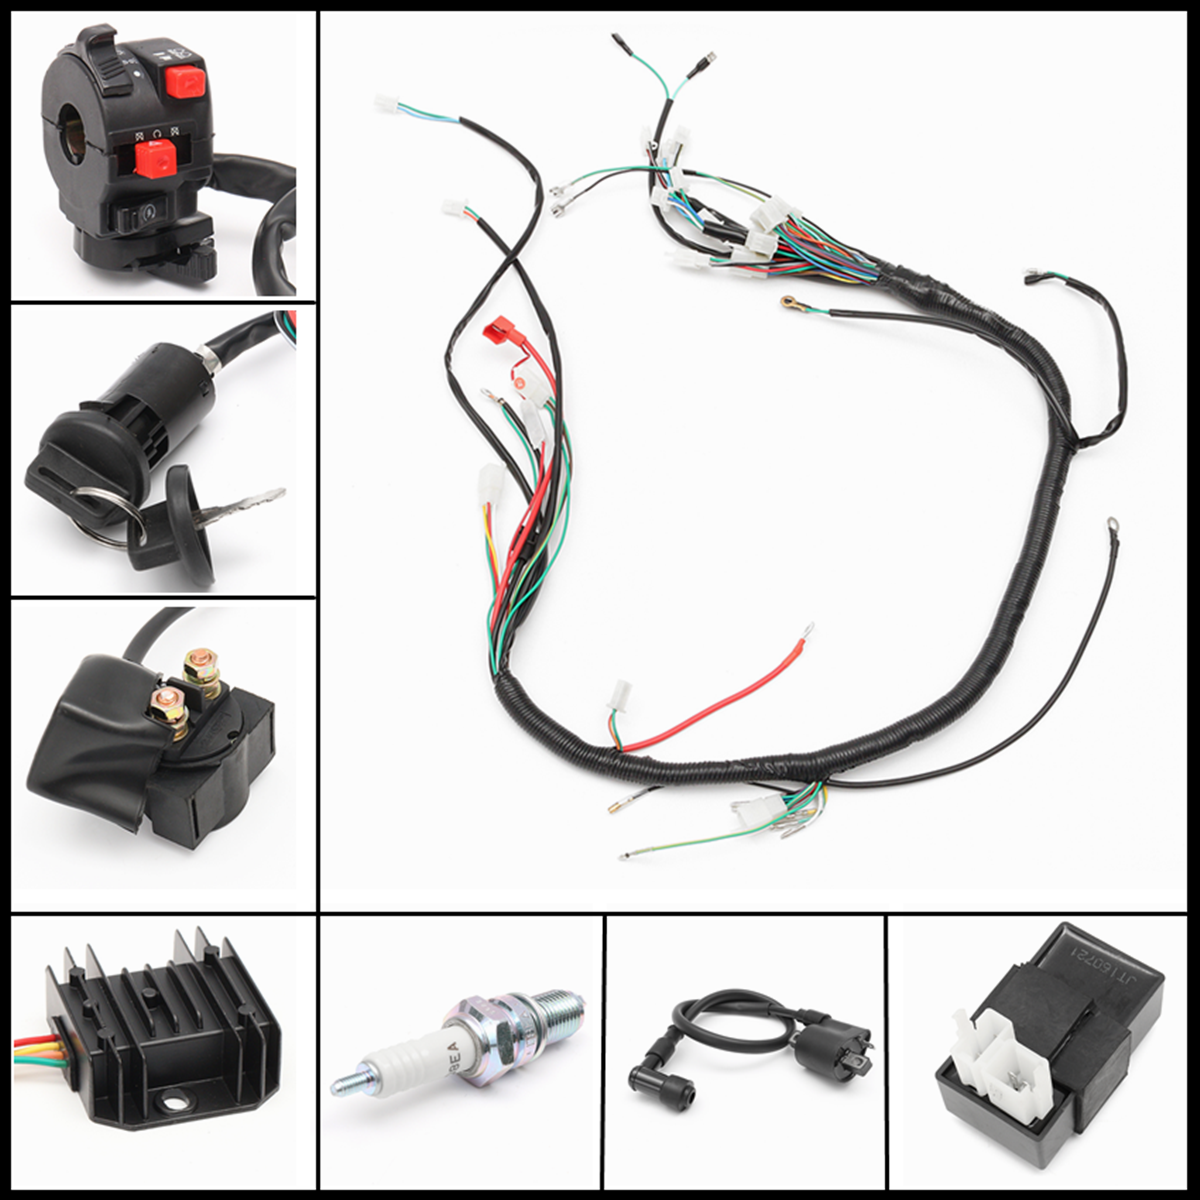 wiring harness loom solenoid coil rectifier cdi fit 120. Black Bedroom Furniture Sets. Home Design Ideas